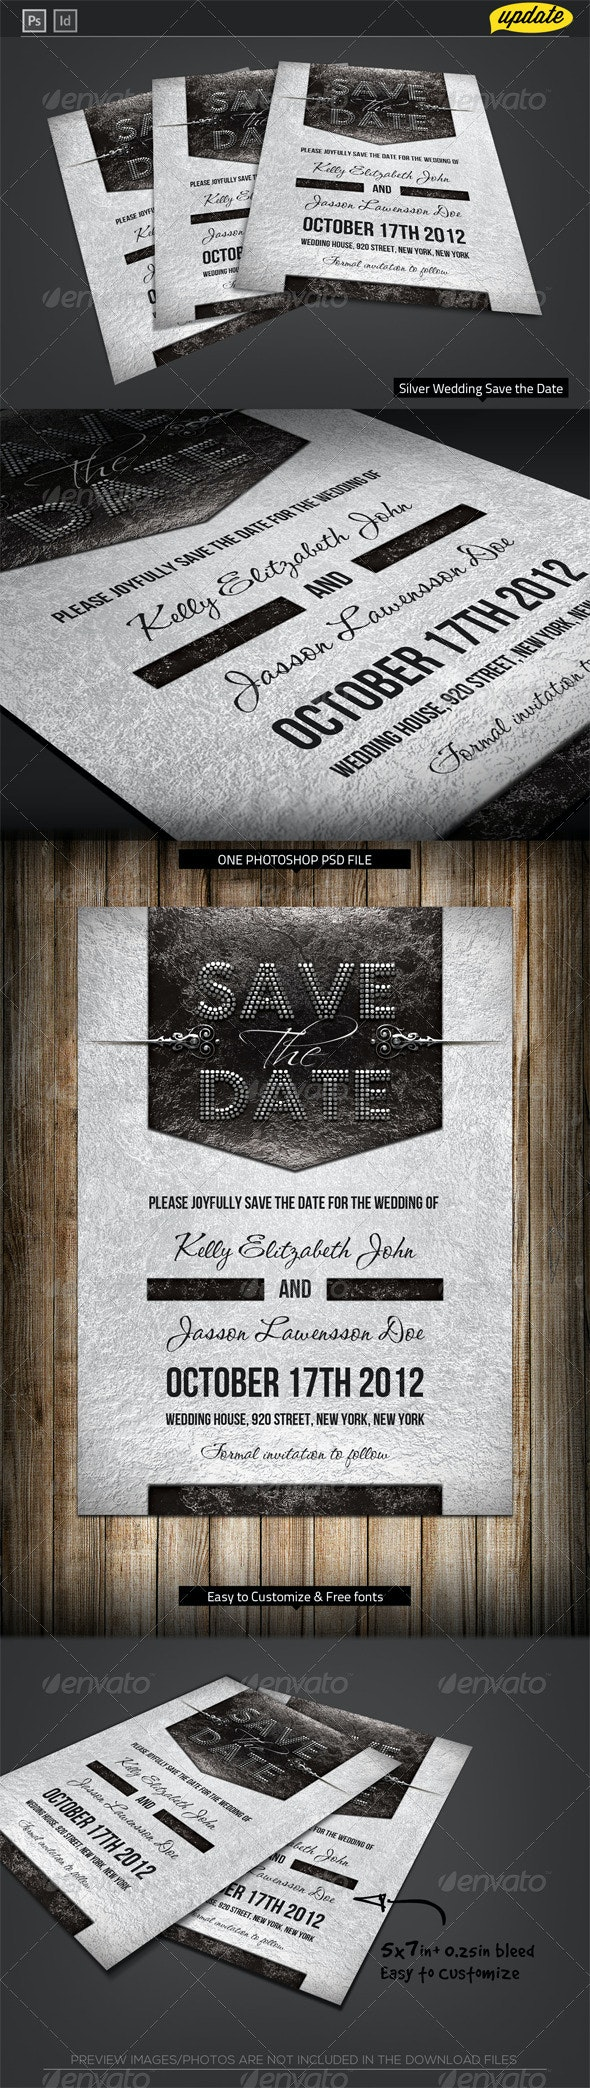 Silver Wedding Save the Date Template - Weddings Cards & Invites